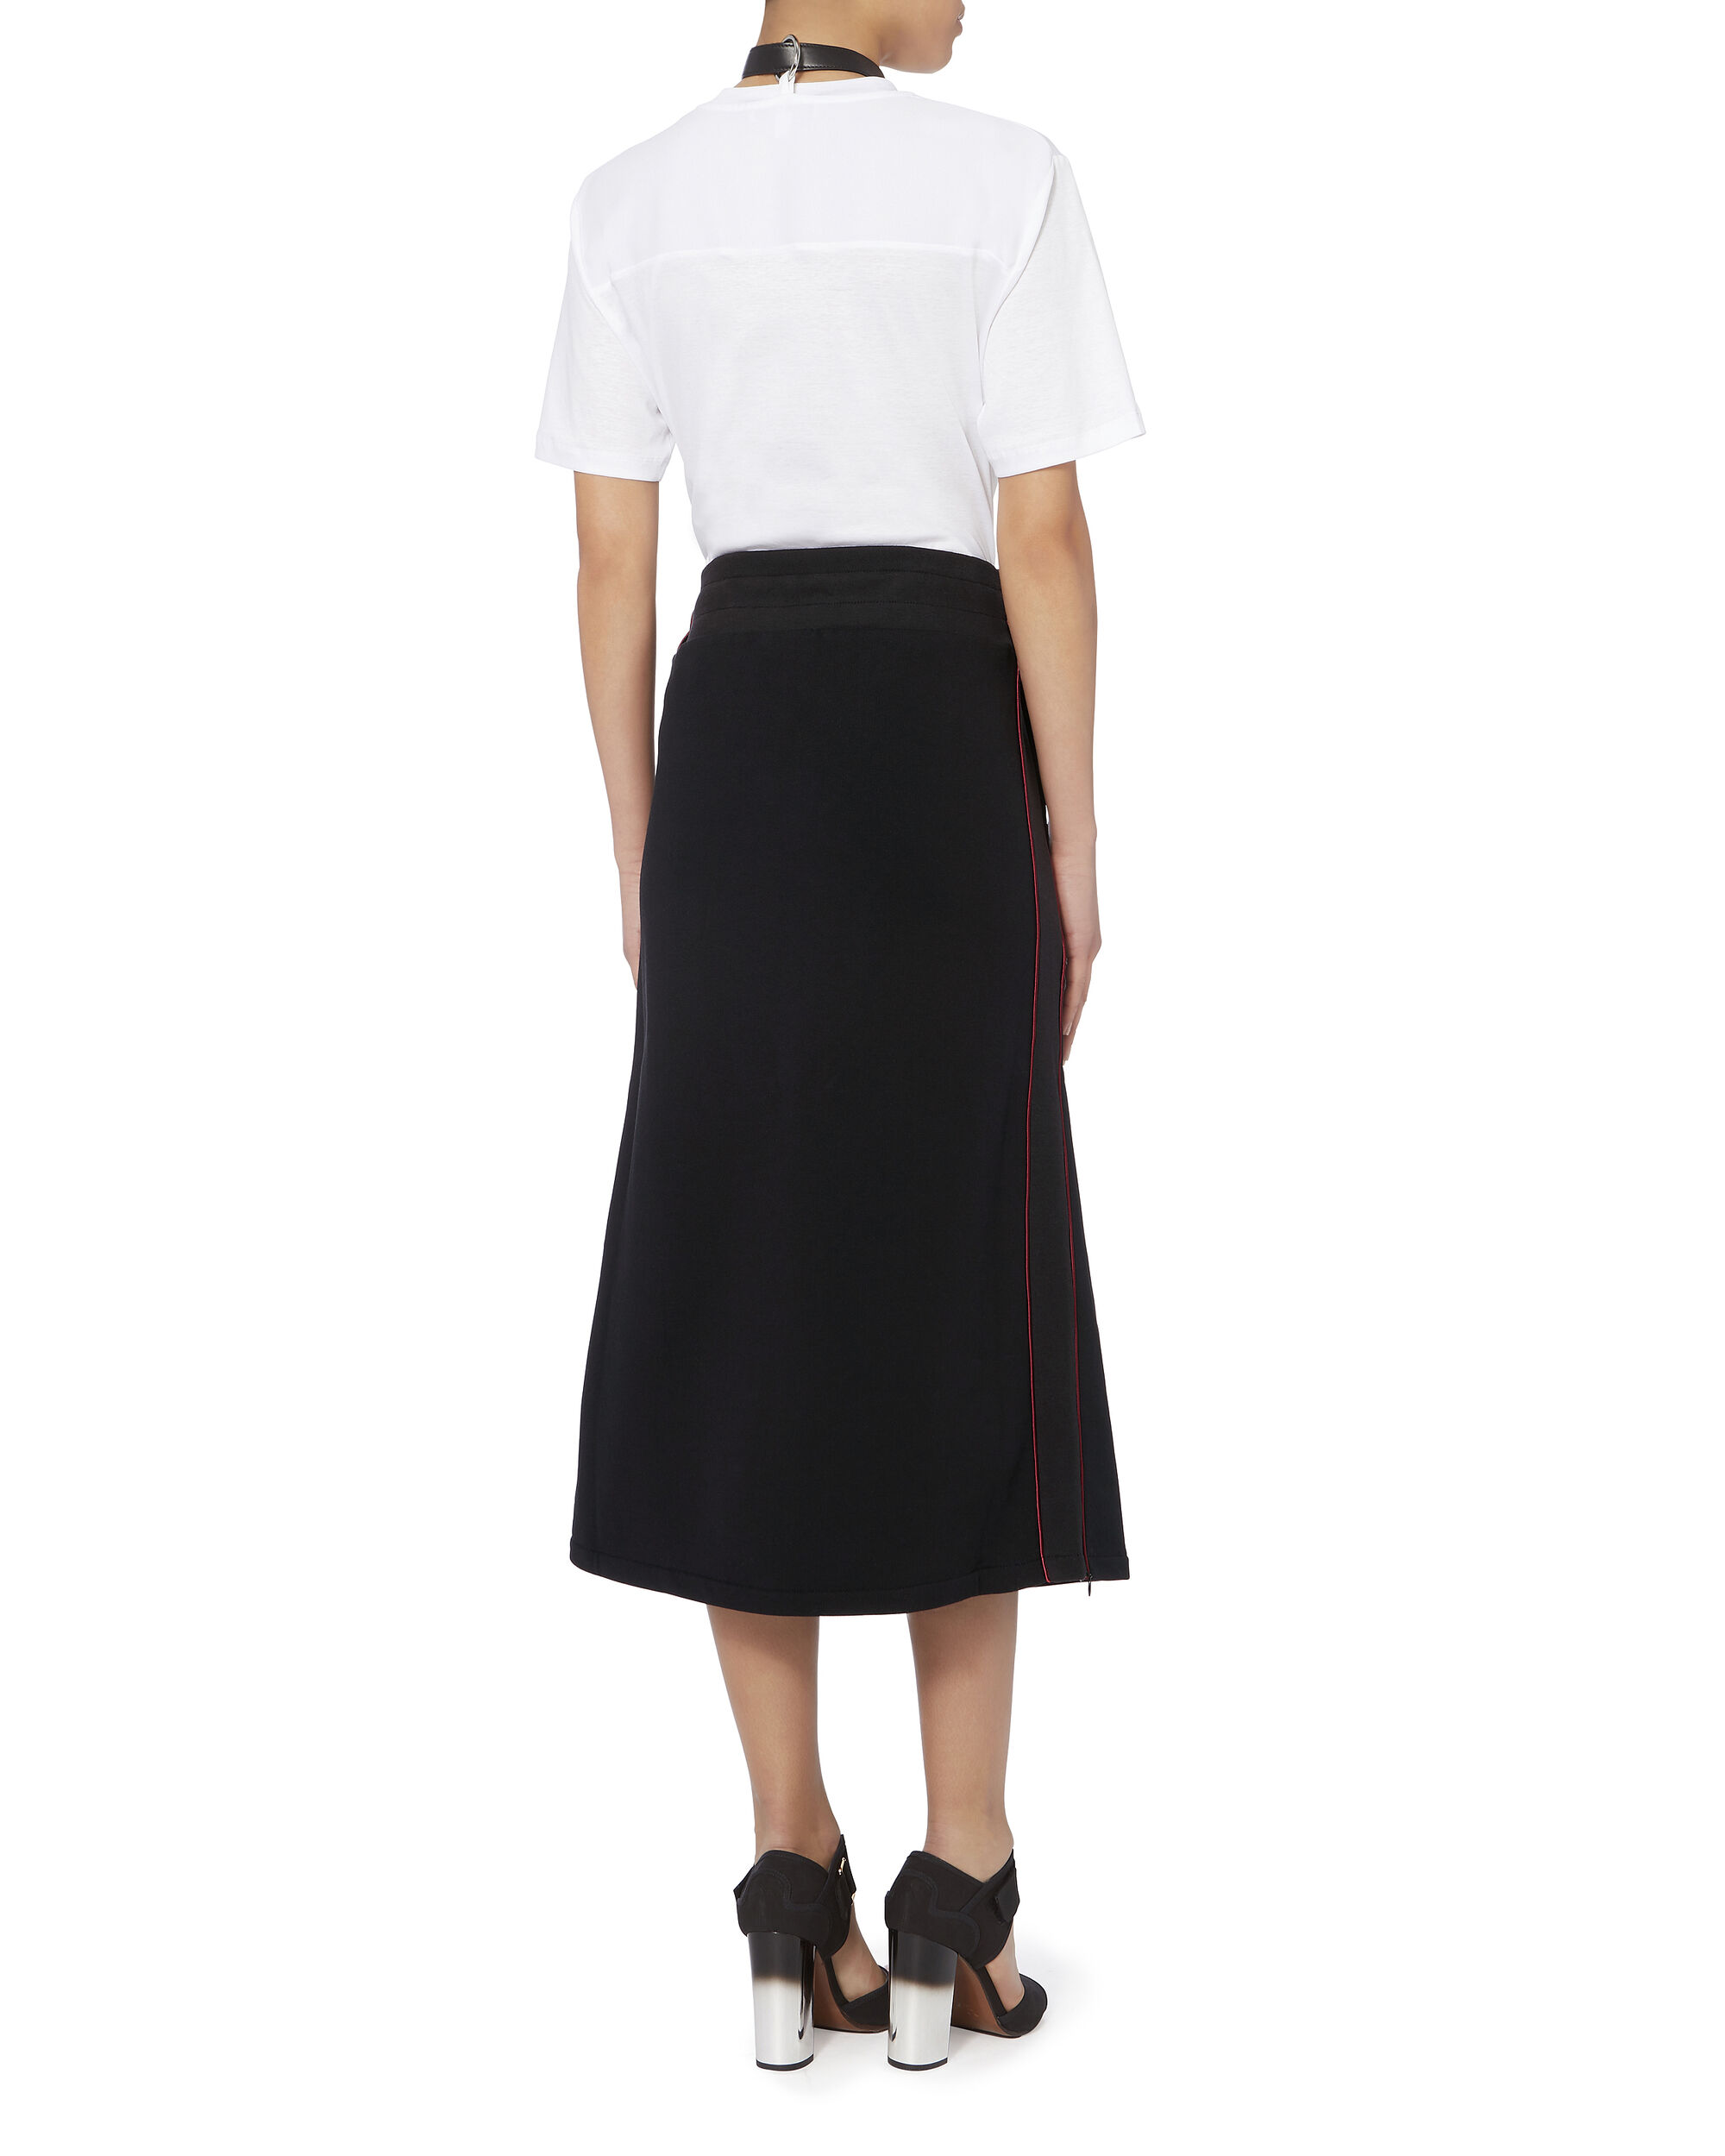 Afra Sweatshirt Side Slit Skirt, BLACK, hi-res